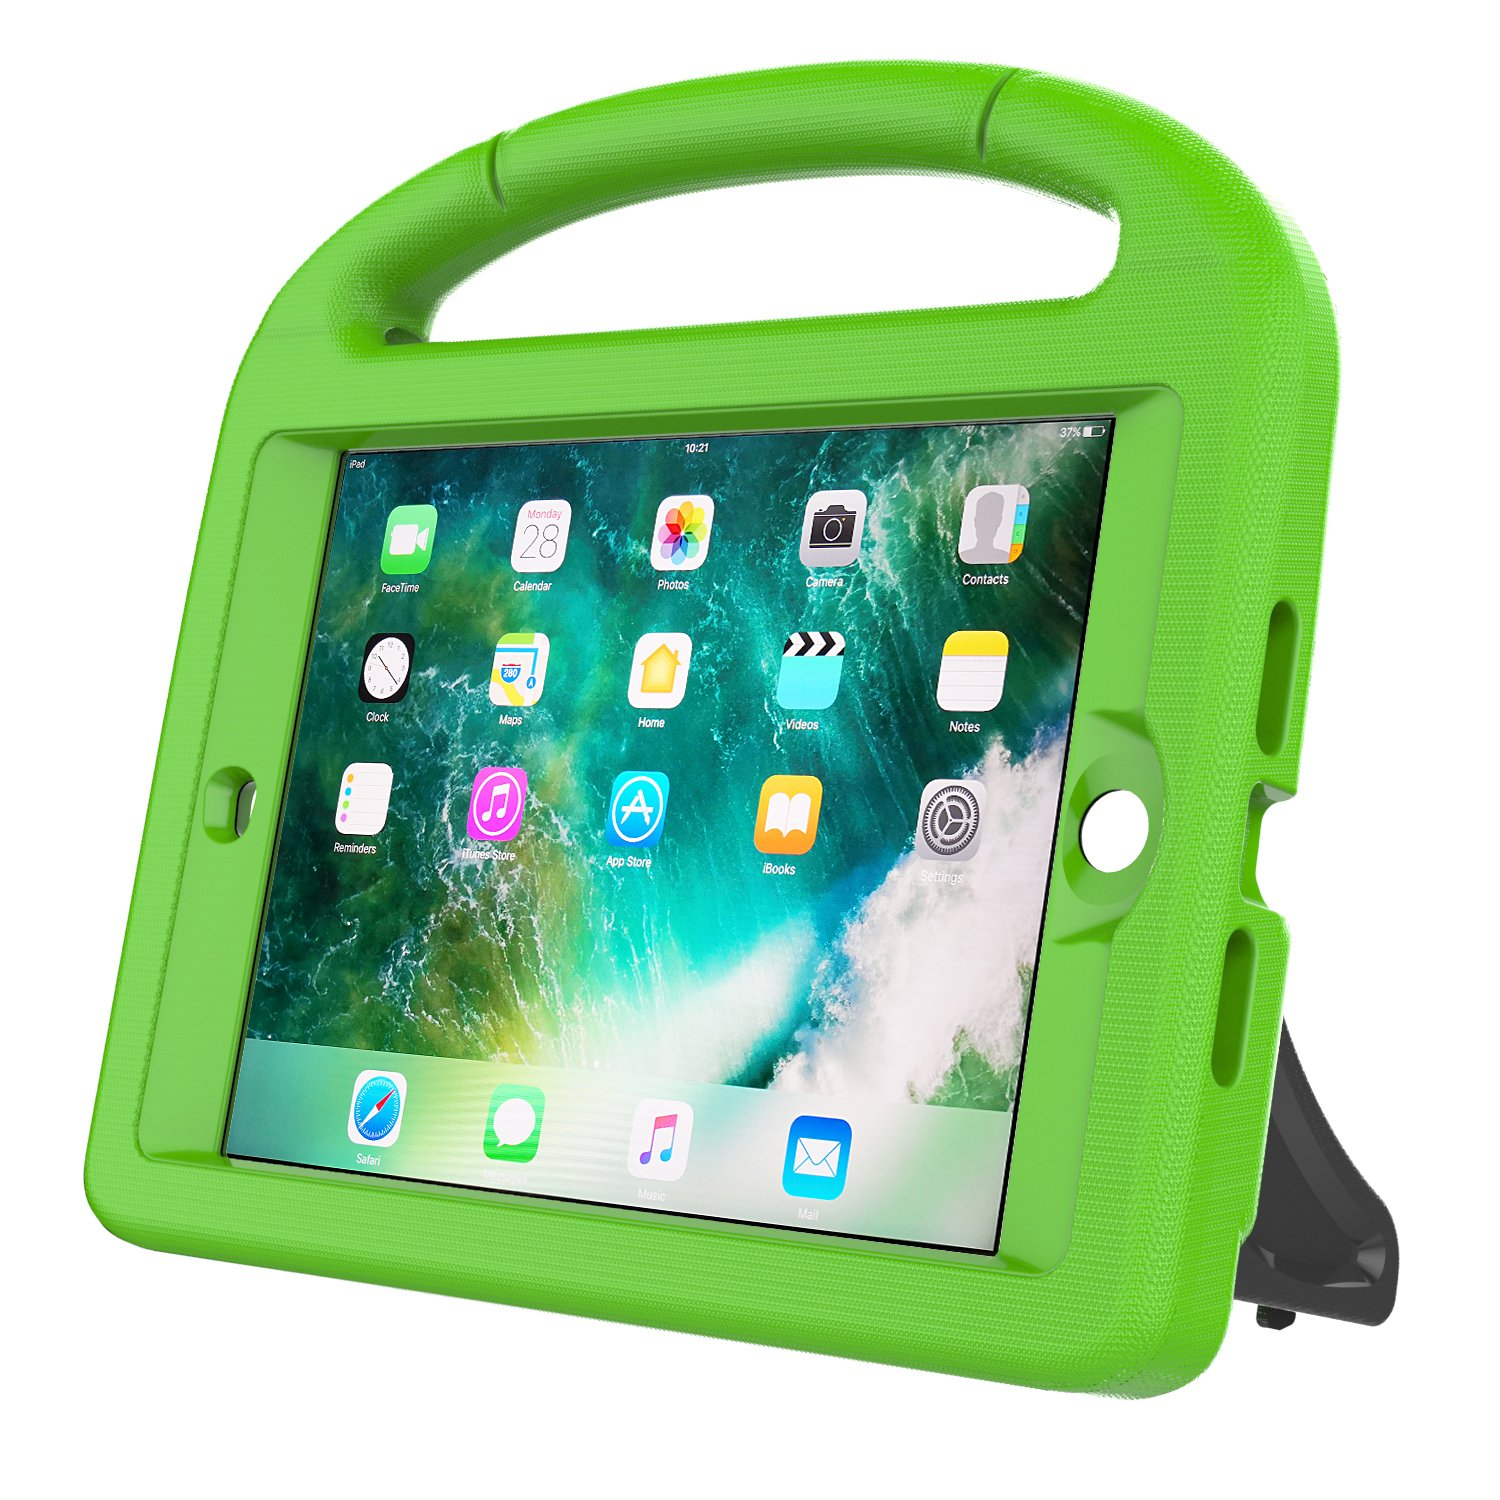 AVAWO Kids Case Built-in Screen Protector for iPad Mini 1 2 3 Rose iPad Mini 3rd Generation Light Weight Shock Proof Handle Stand Kids for iPad Mini 1st Generation iPad Mini 2nd Generation